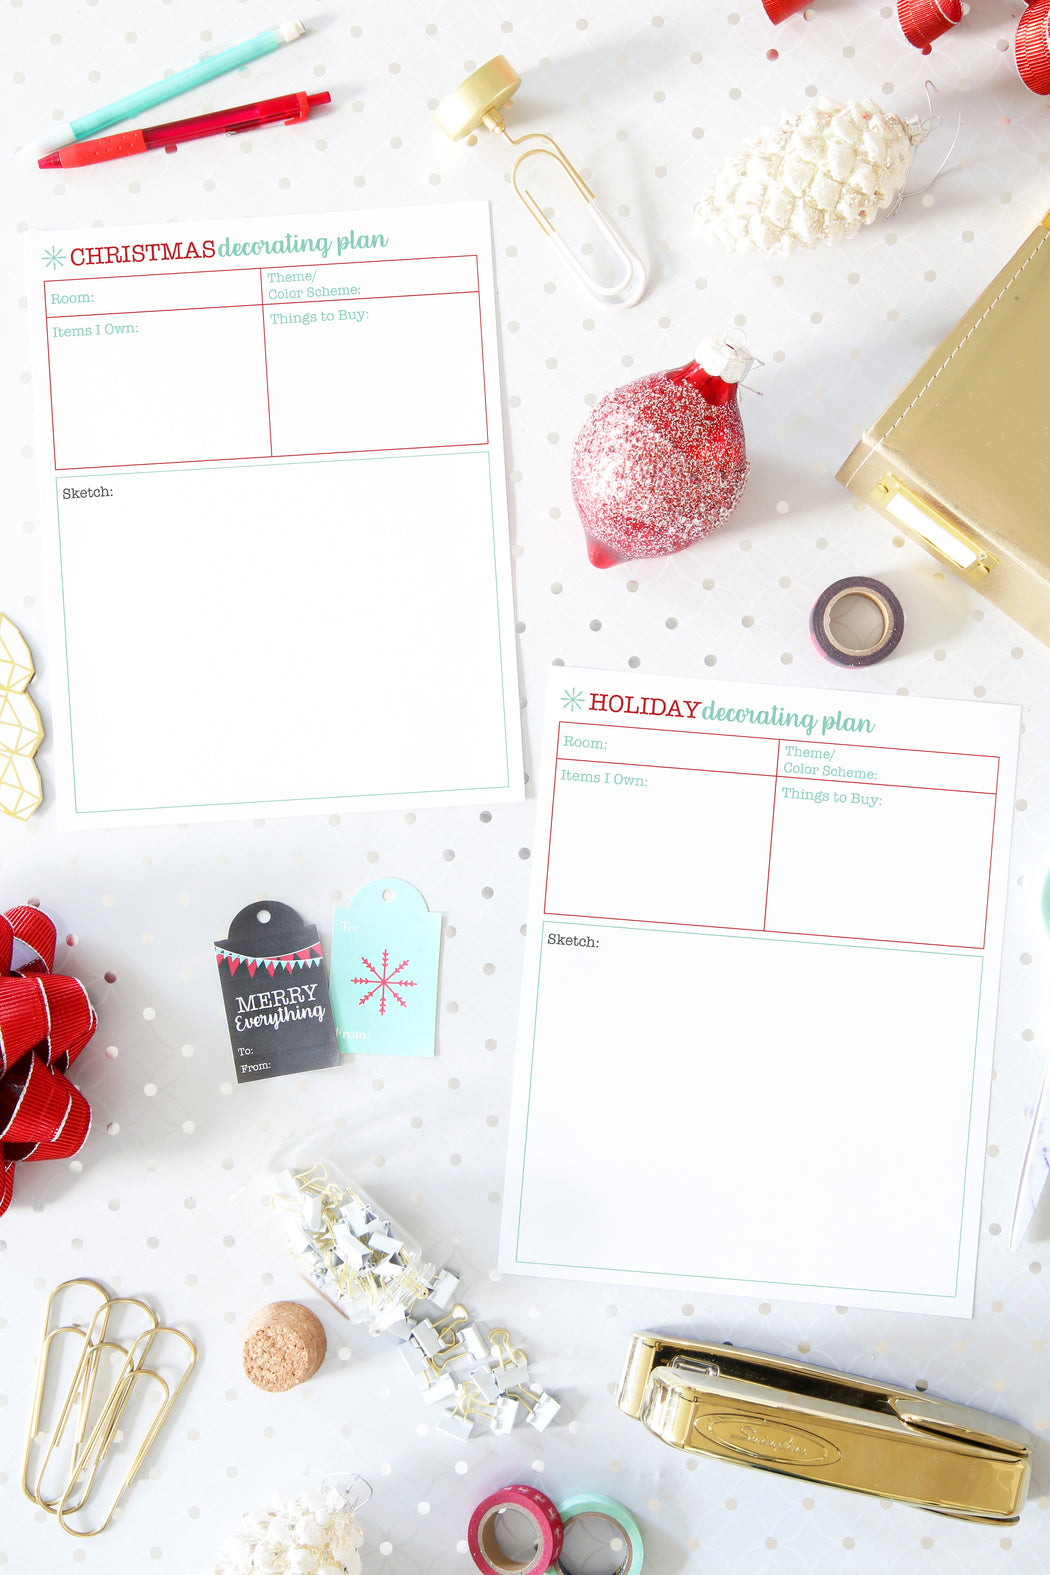 Christmas Decor Plan / Holiday Decor Plan, organizing printables, Christmas Planner, Holiday Planner, #printables #organizing